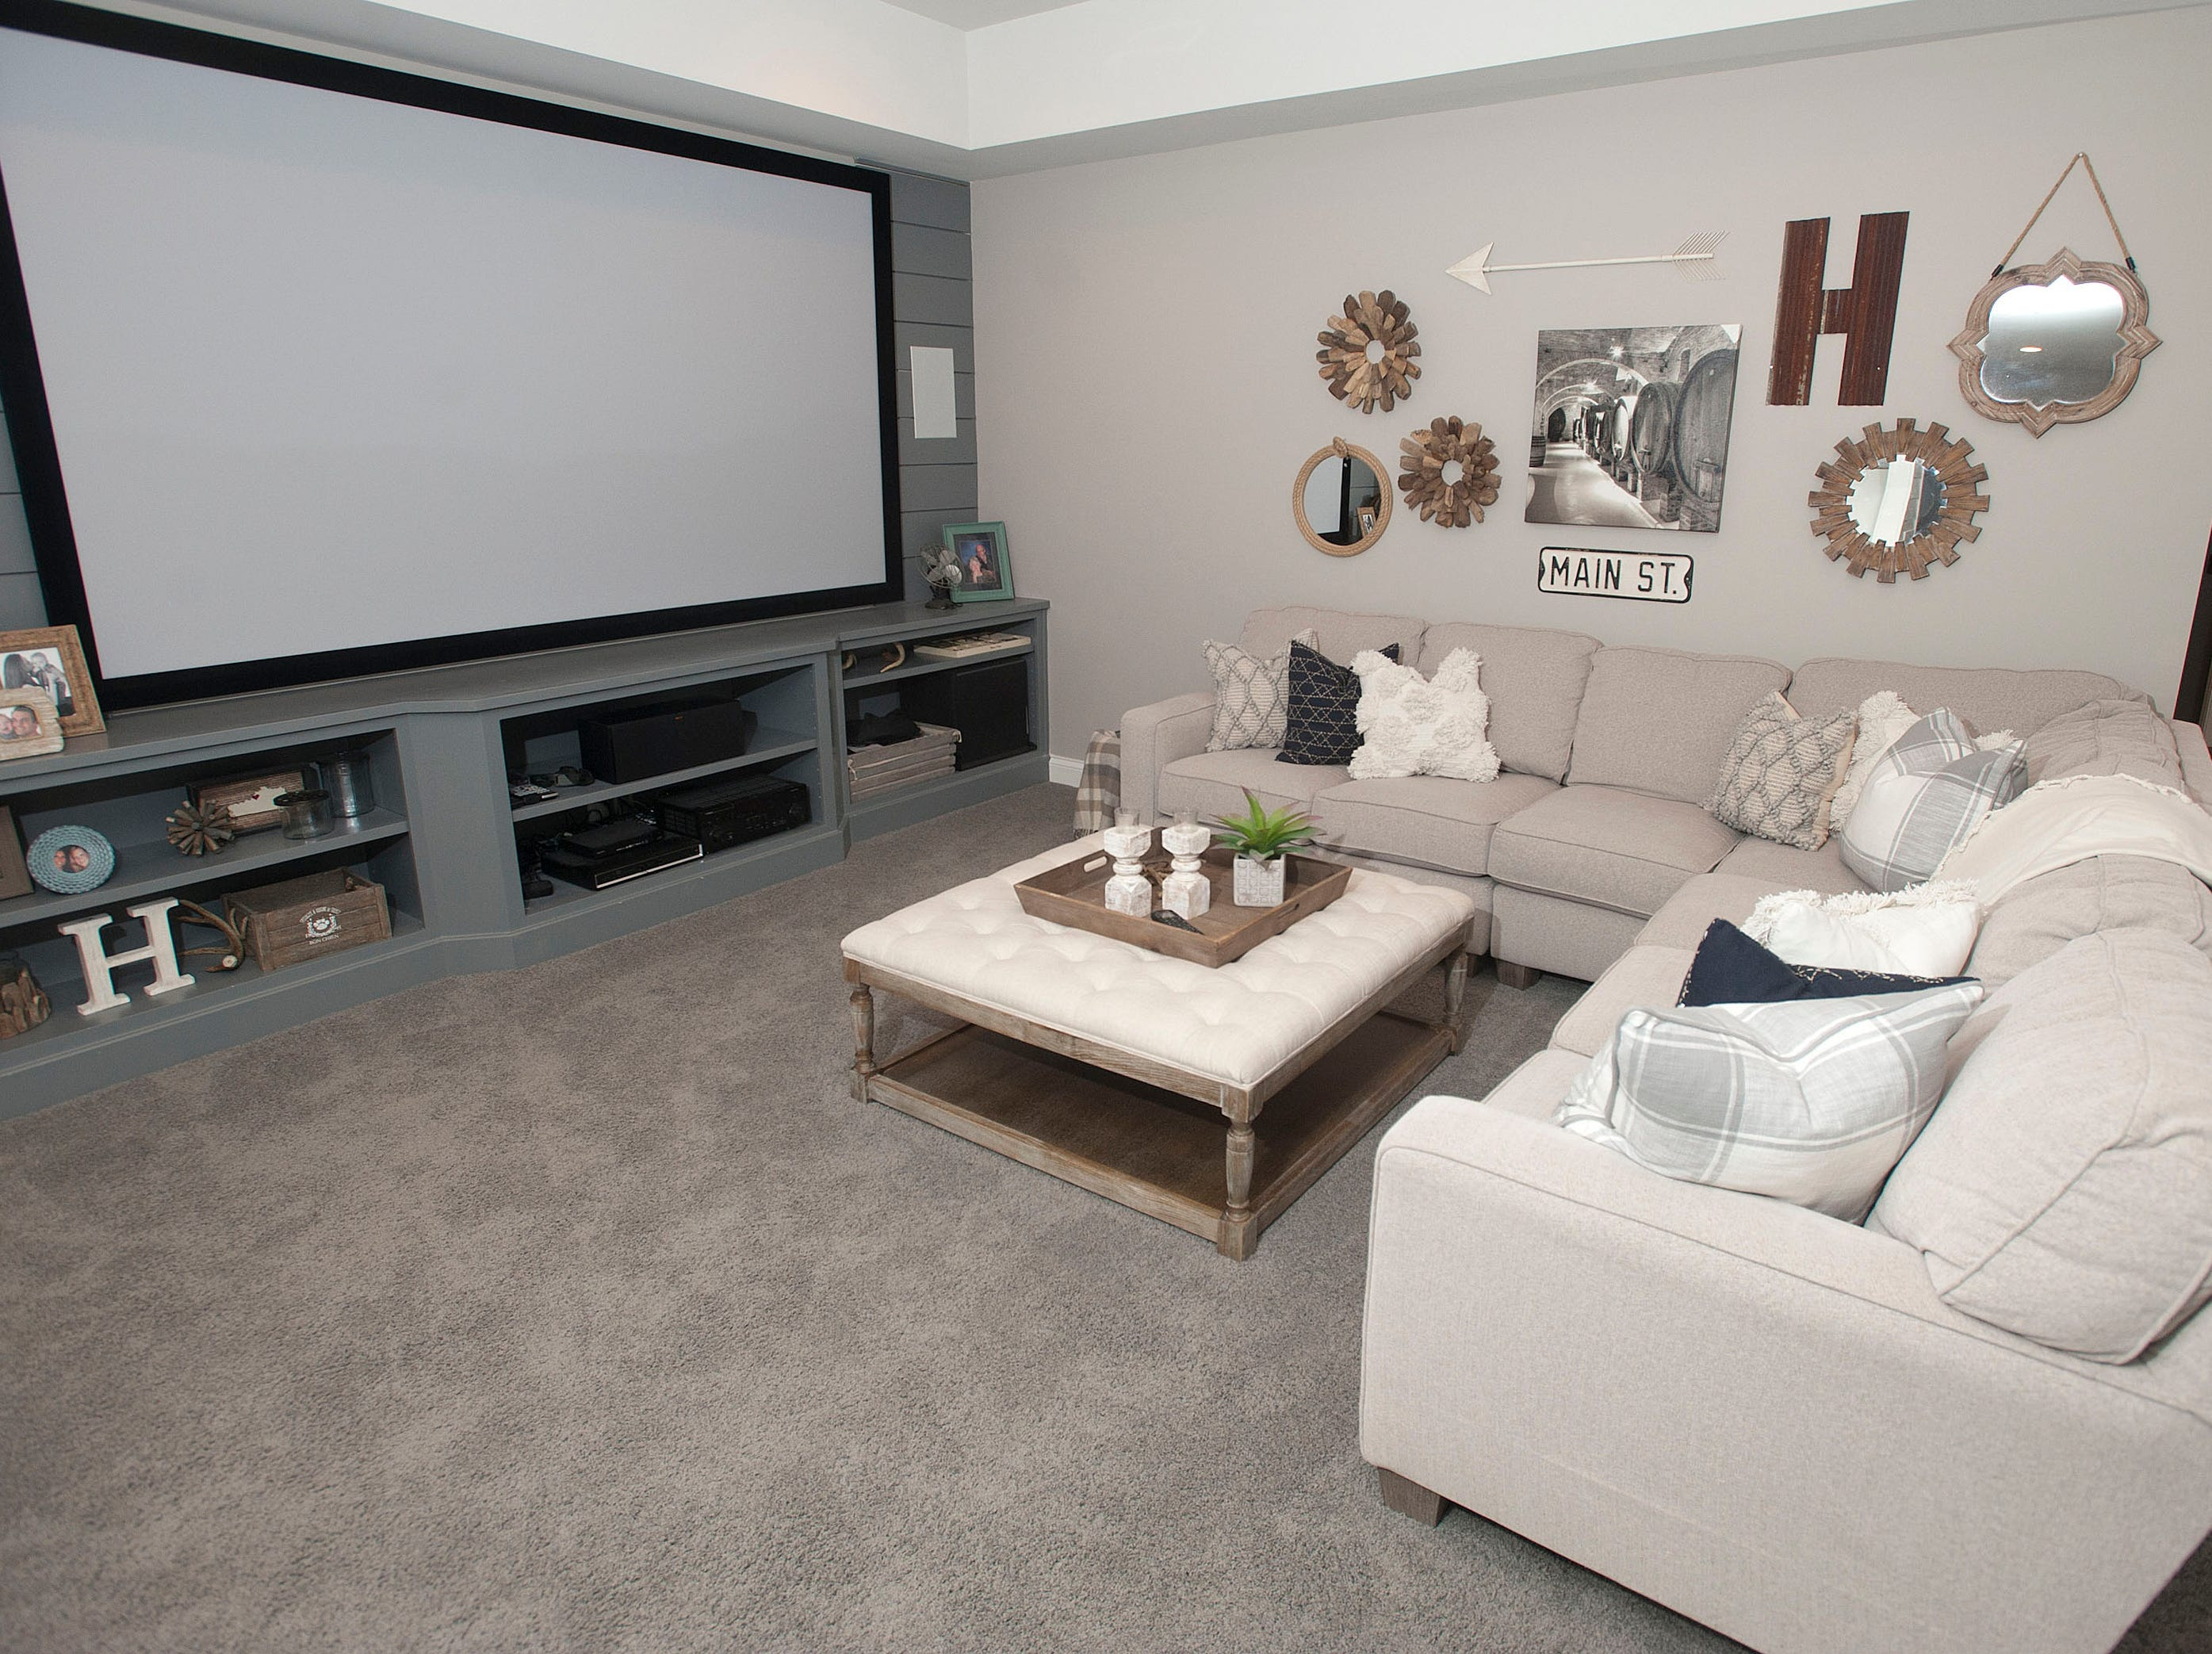 The family room of the Hannah home in Norton Commons.01 March 2019